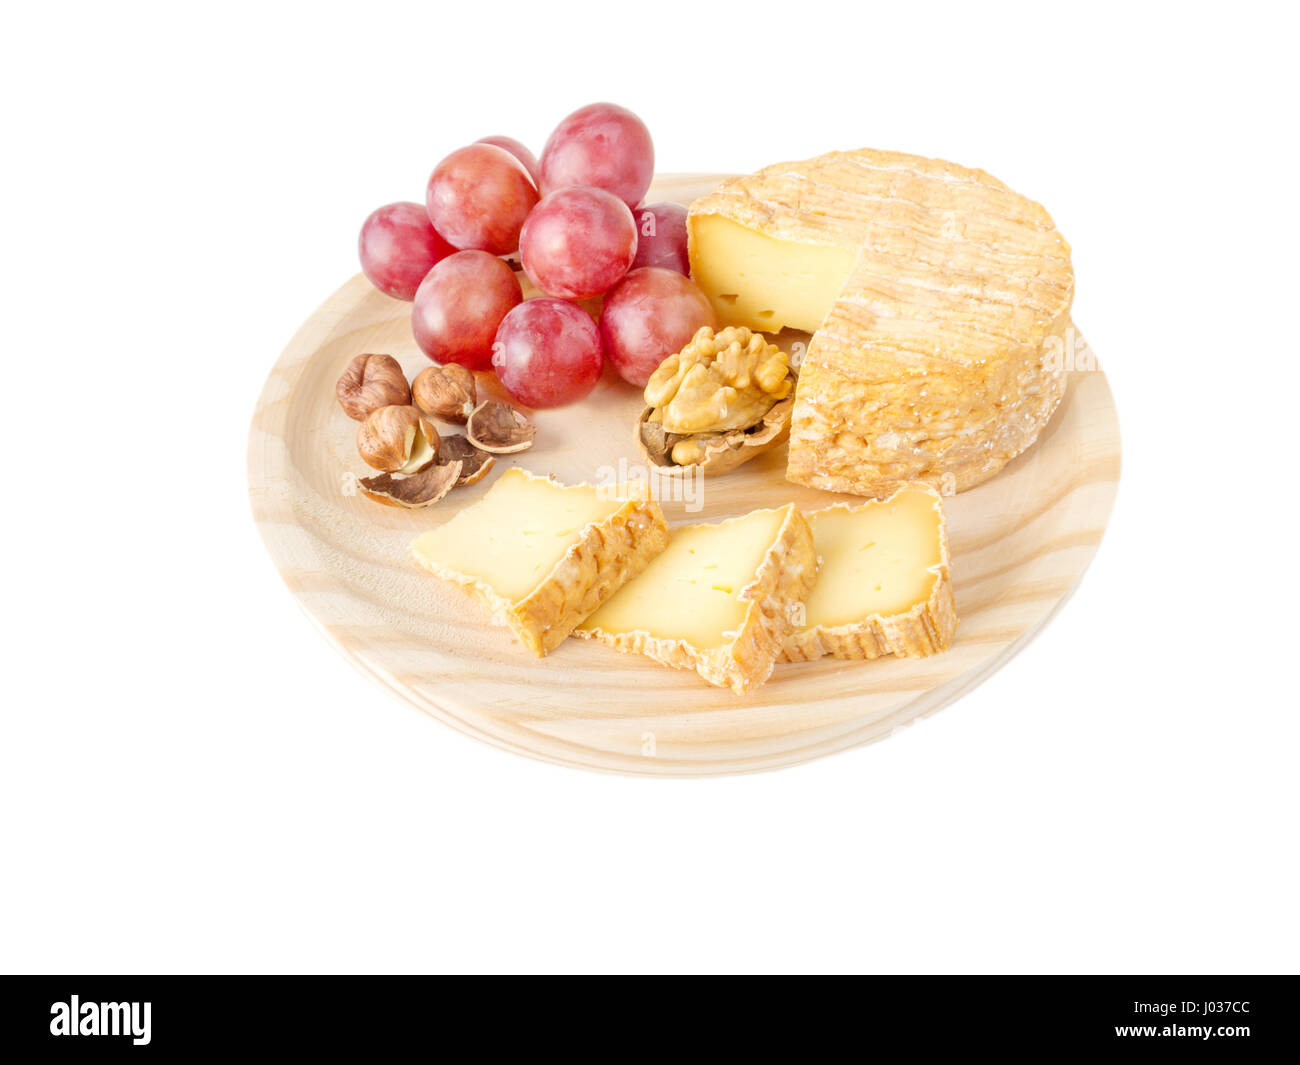 Soft washed-rind cheese, hazelnuts, walnut and red grape on the textured wooden board isolated on white - Stock Image